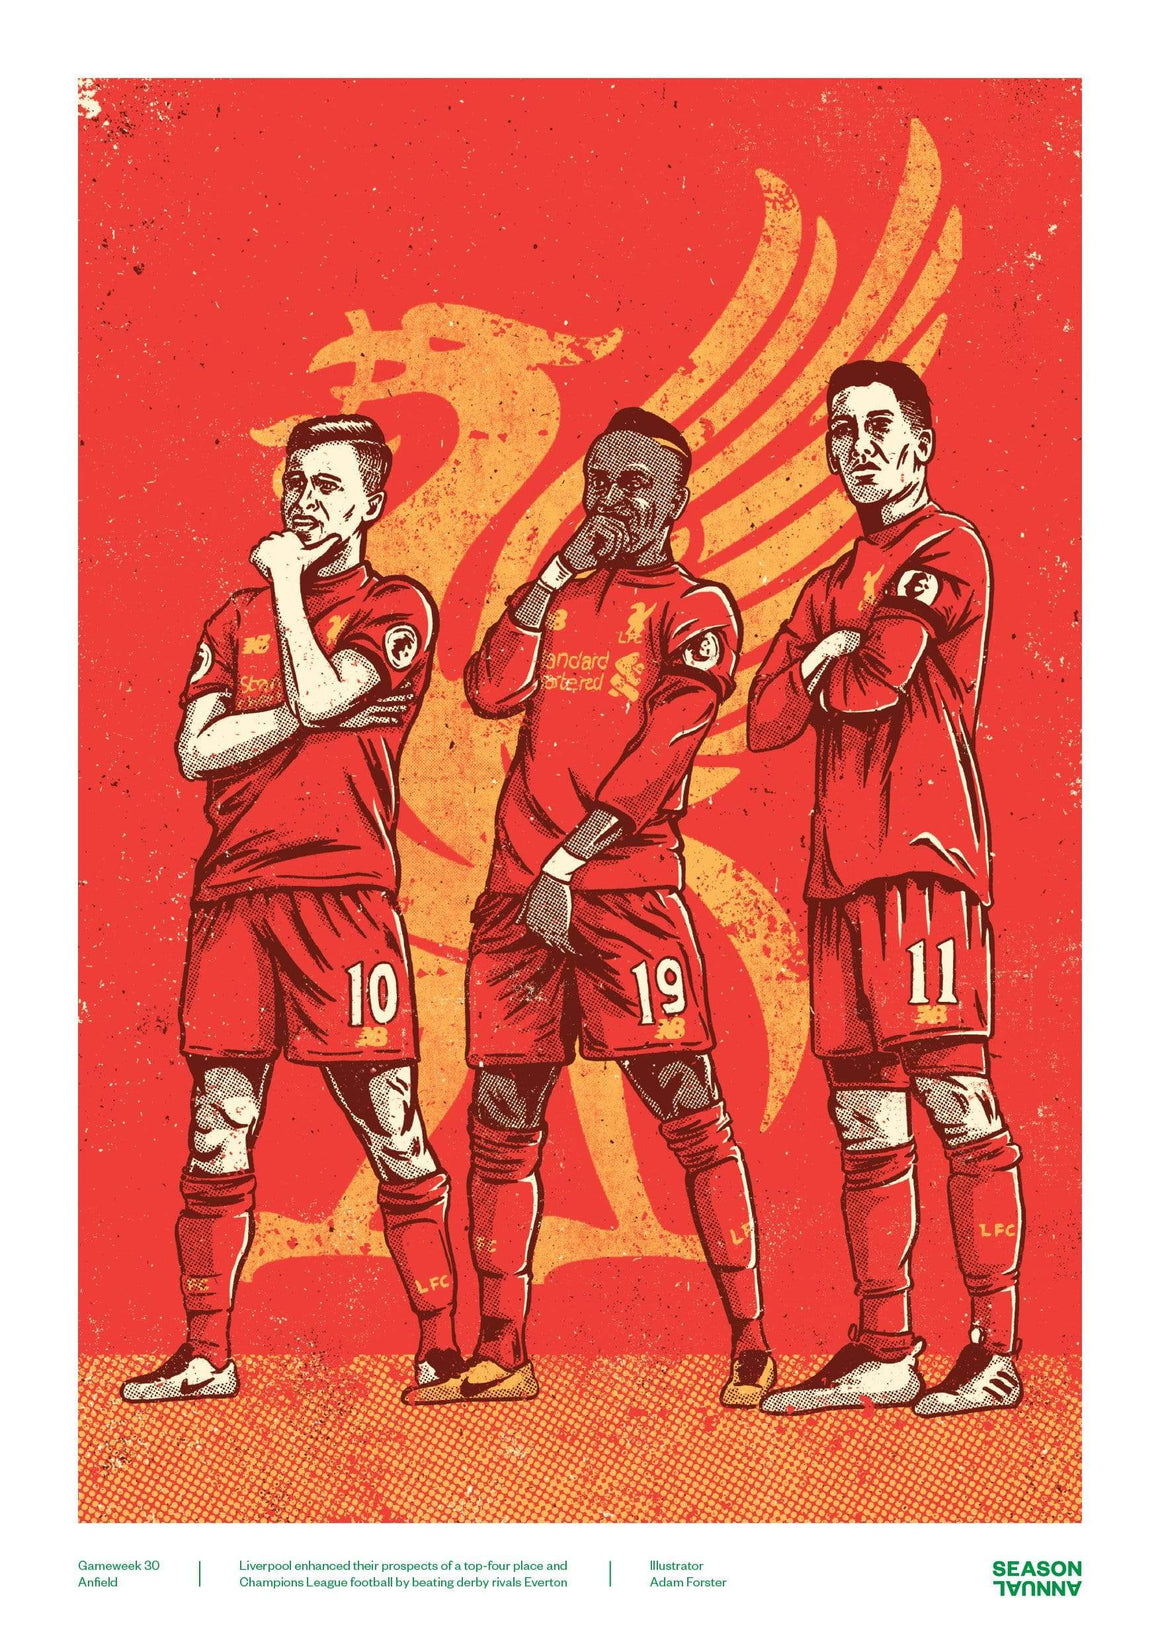 Season Annual A3 poster of Sadio Mané, Coutinho and Firmino for Liverpool